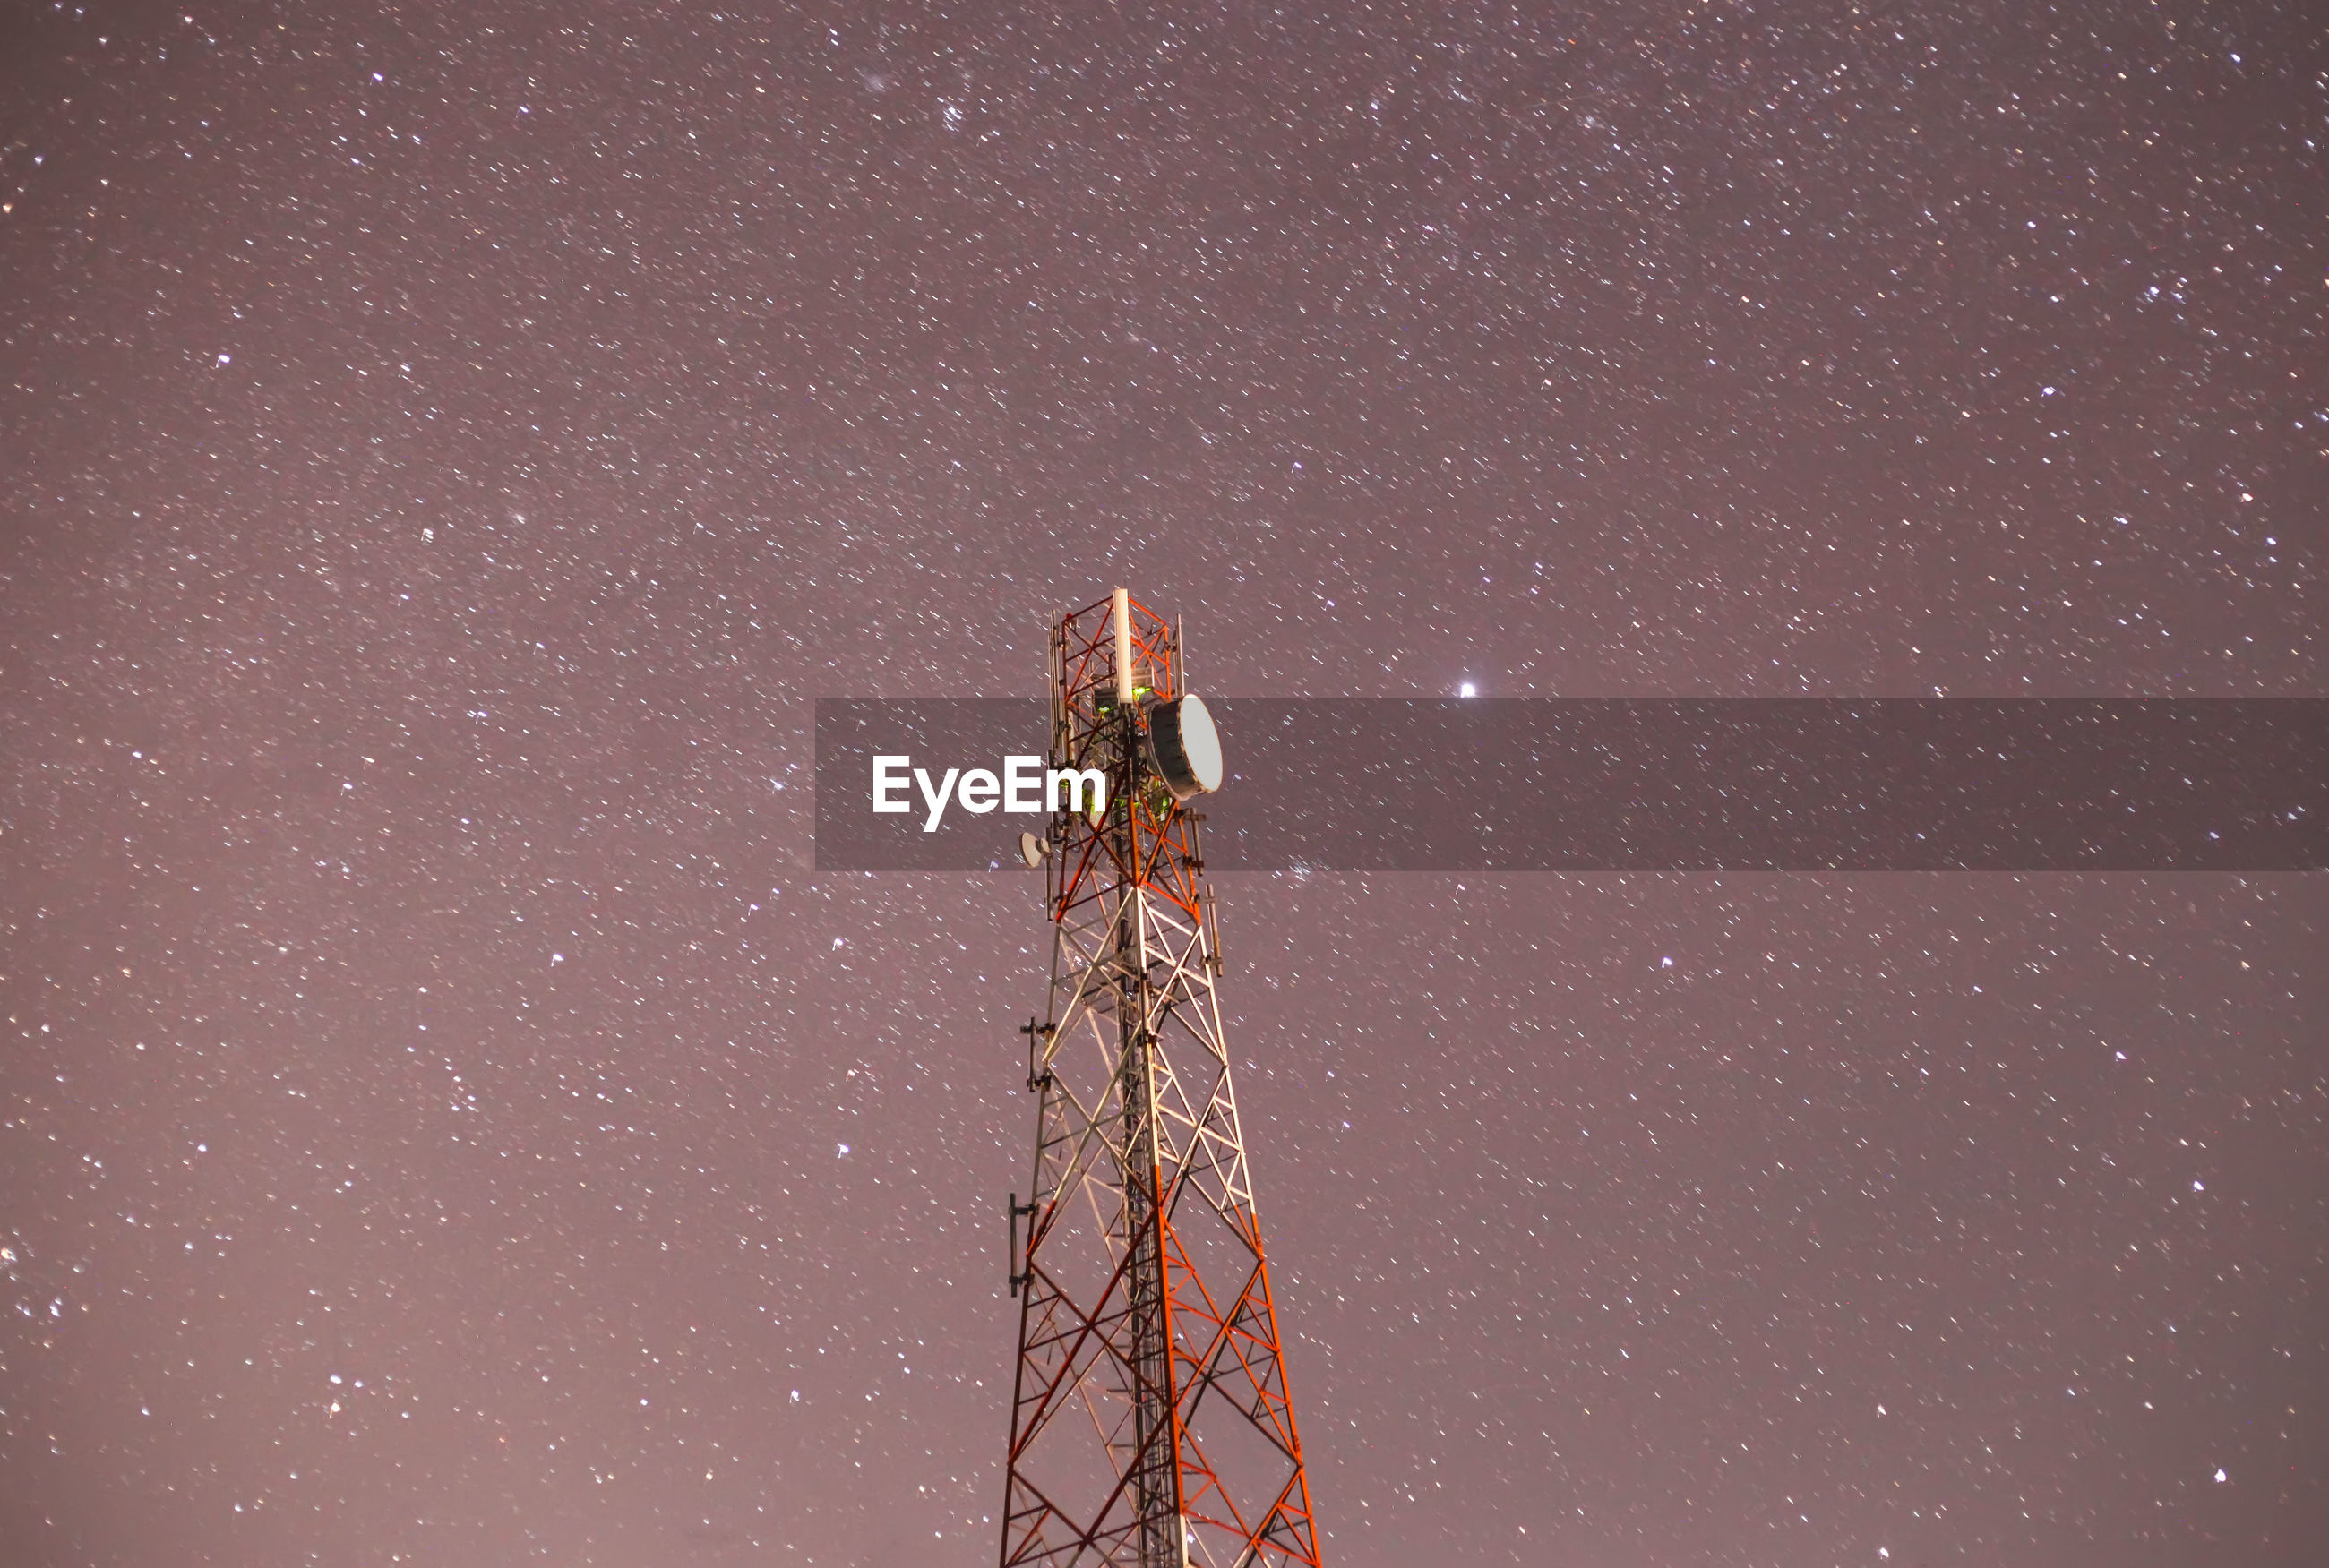 Low angle view of illuminated communications tower against sky at night